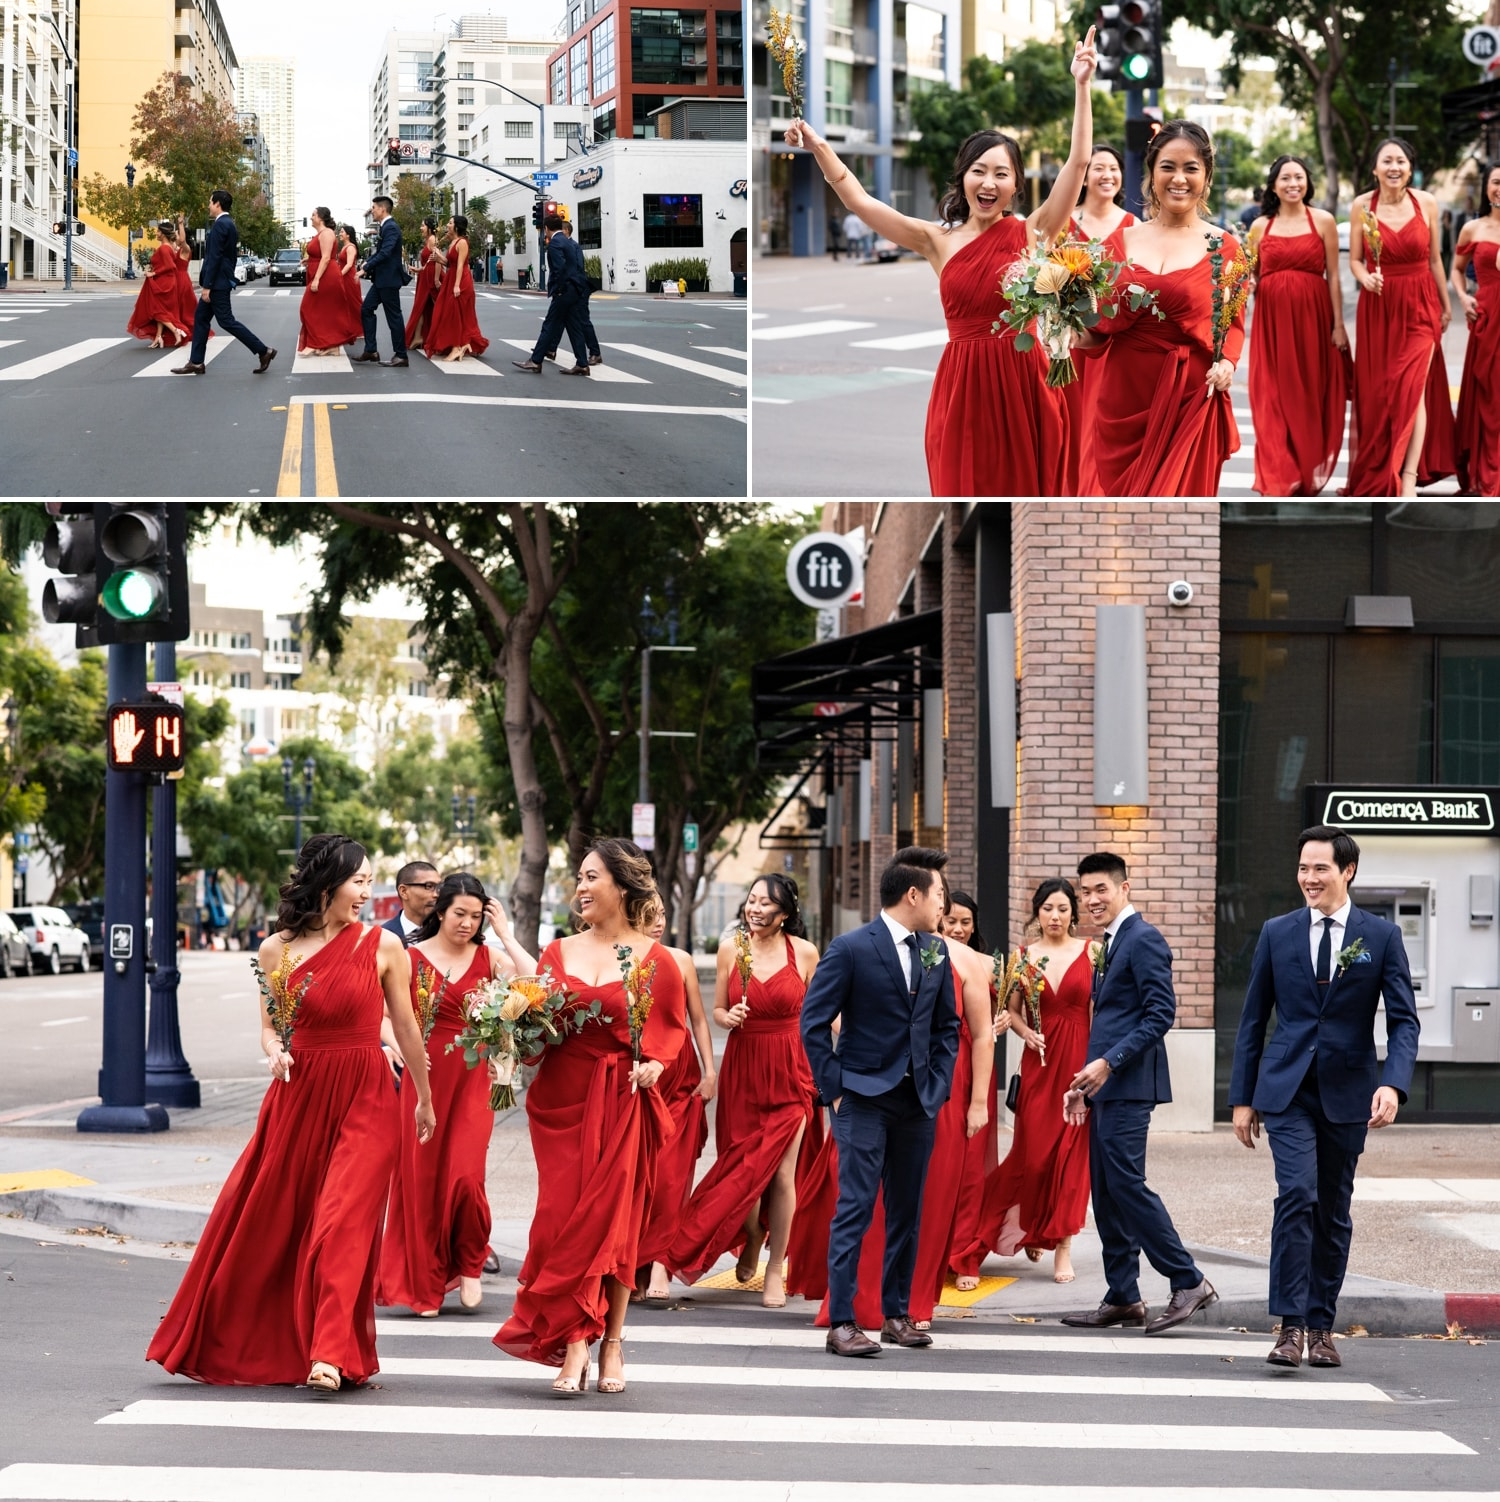 Bridal party walking through downtown San Diego.